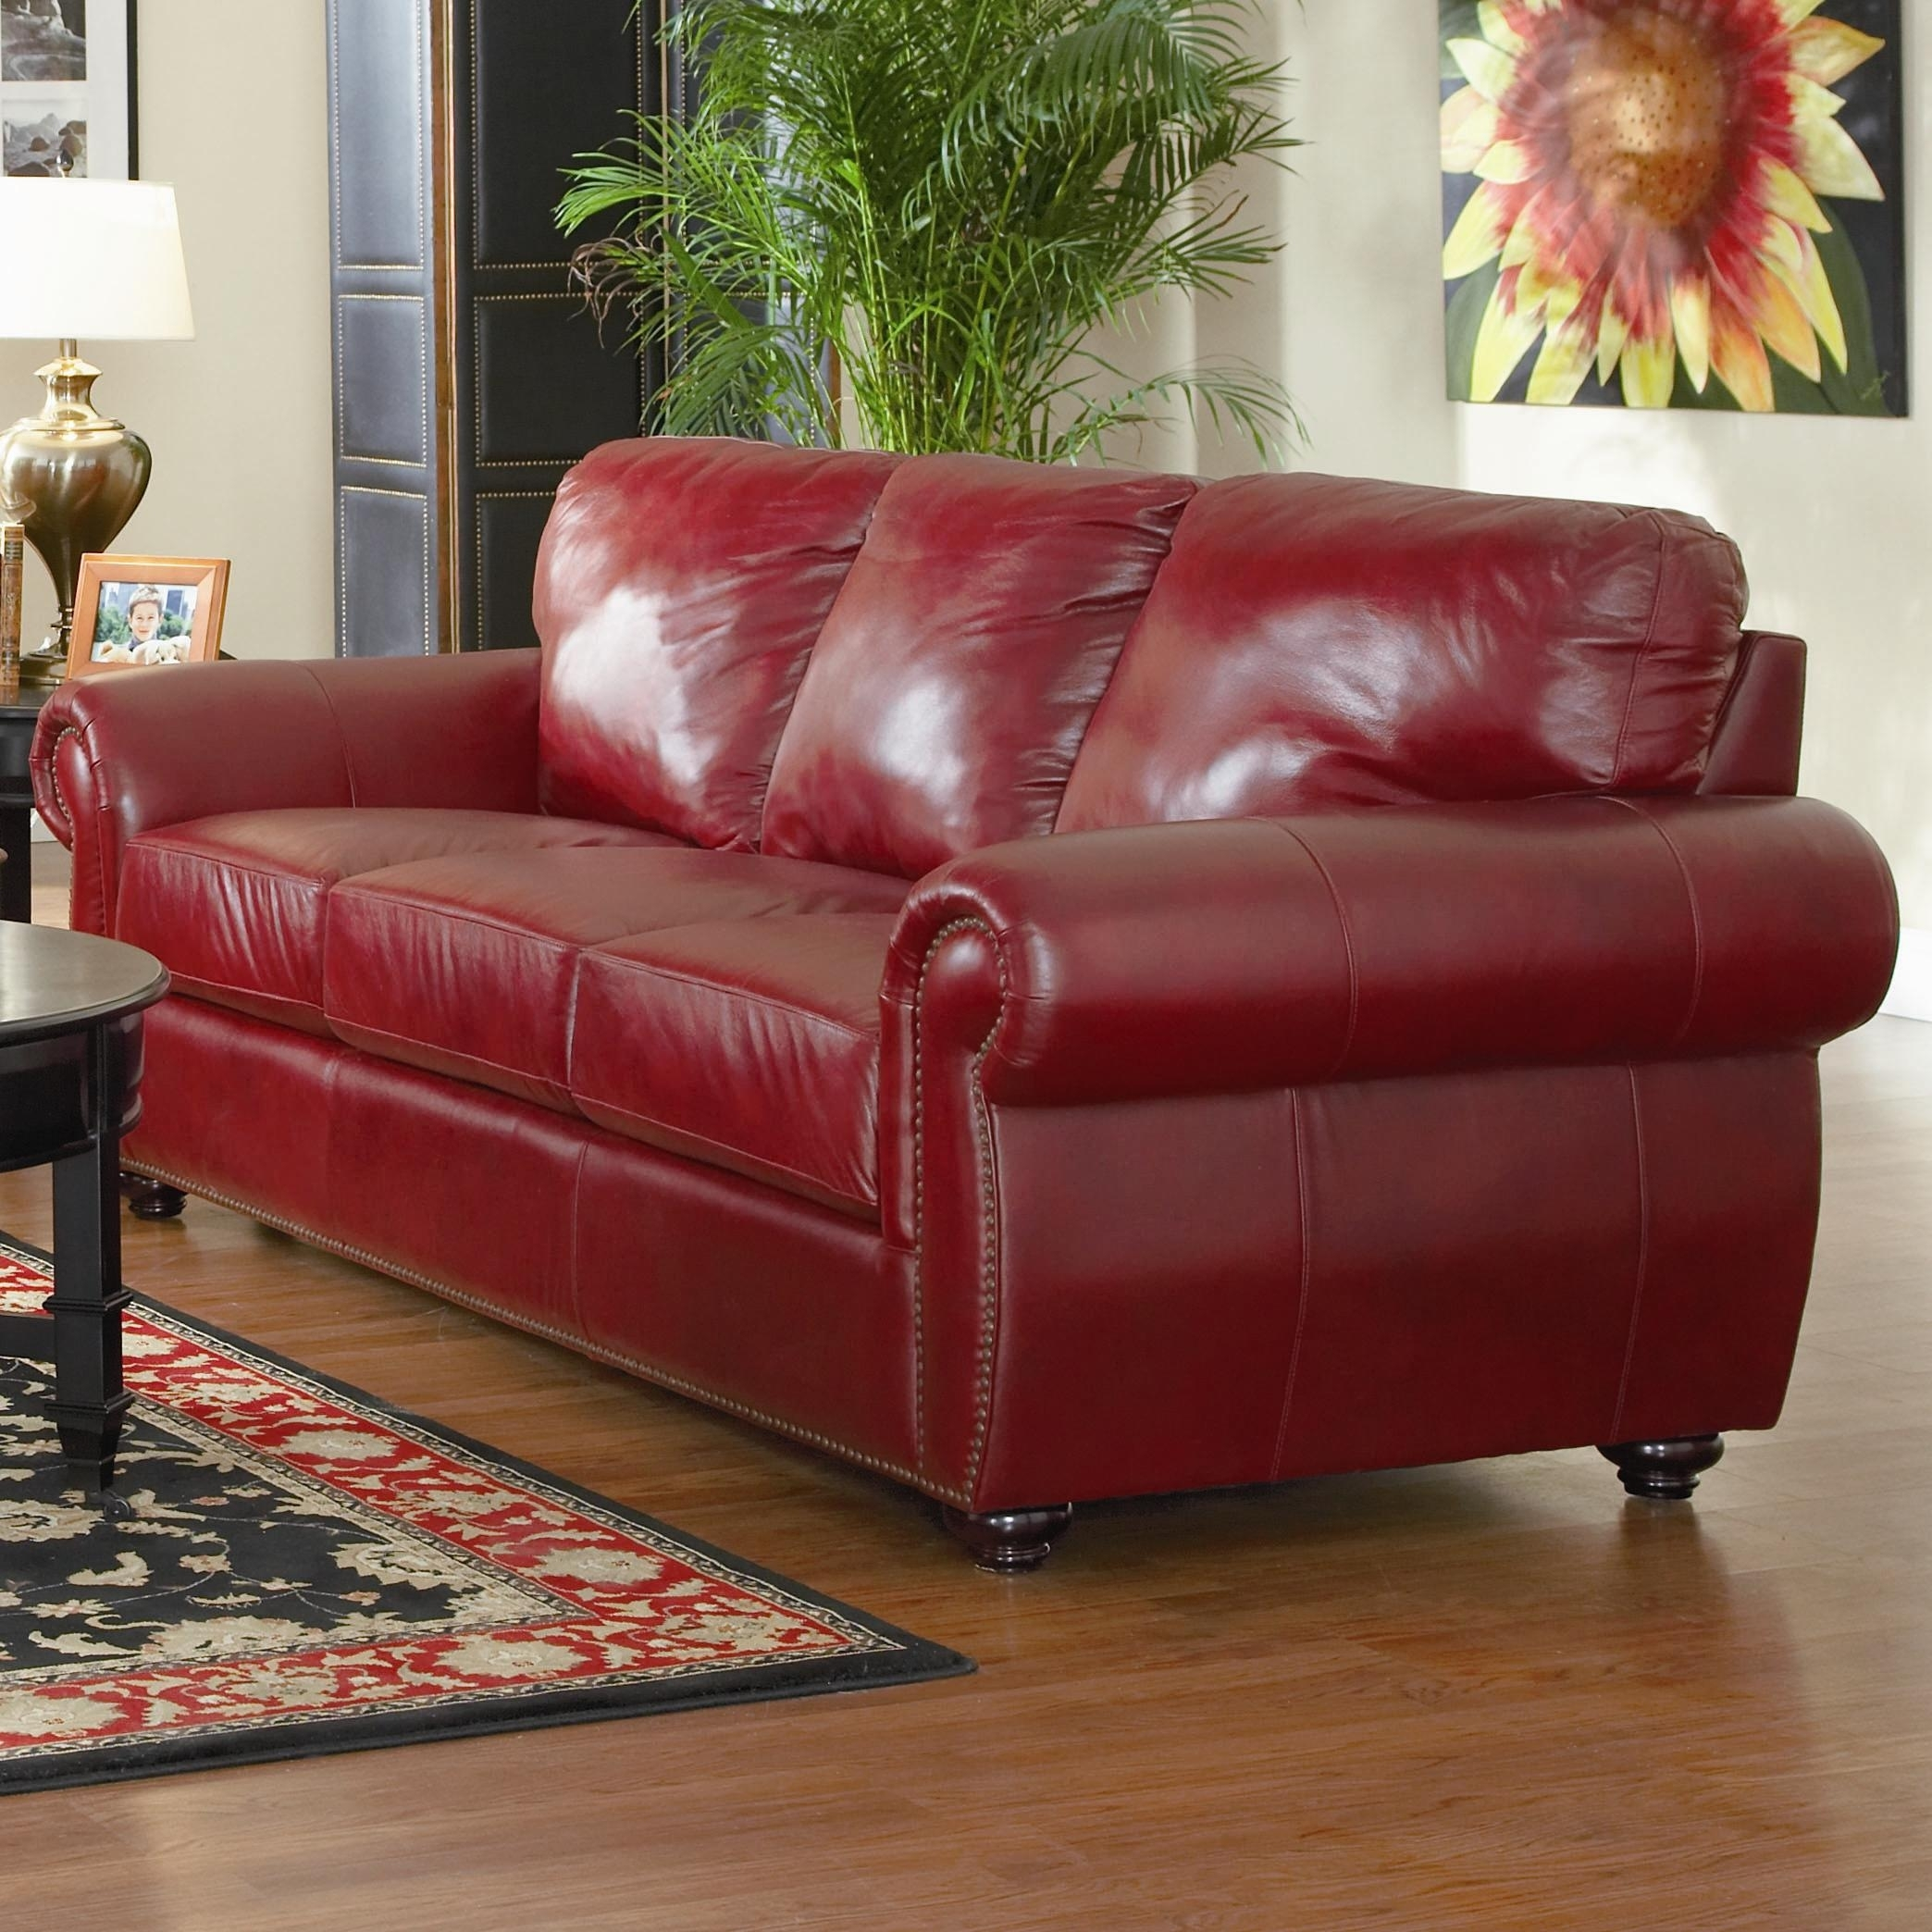 Red Leather Sofa | Aifaresidency Pertaining To Red Leather Couches And Loveseats (Image 5 of 10)